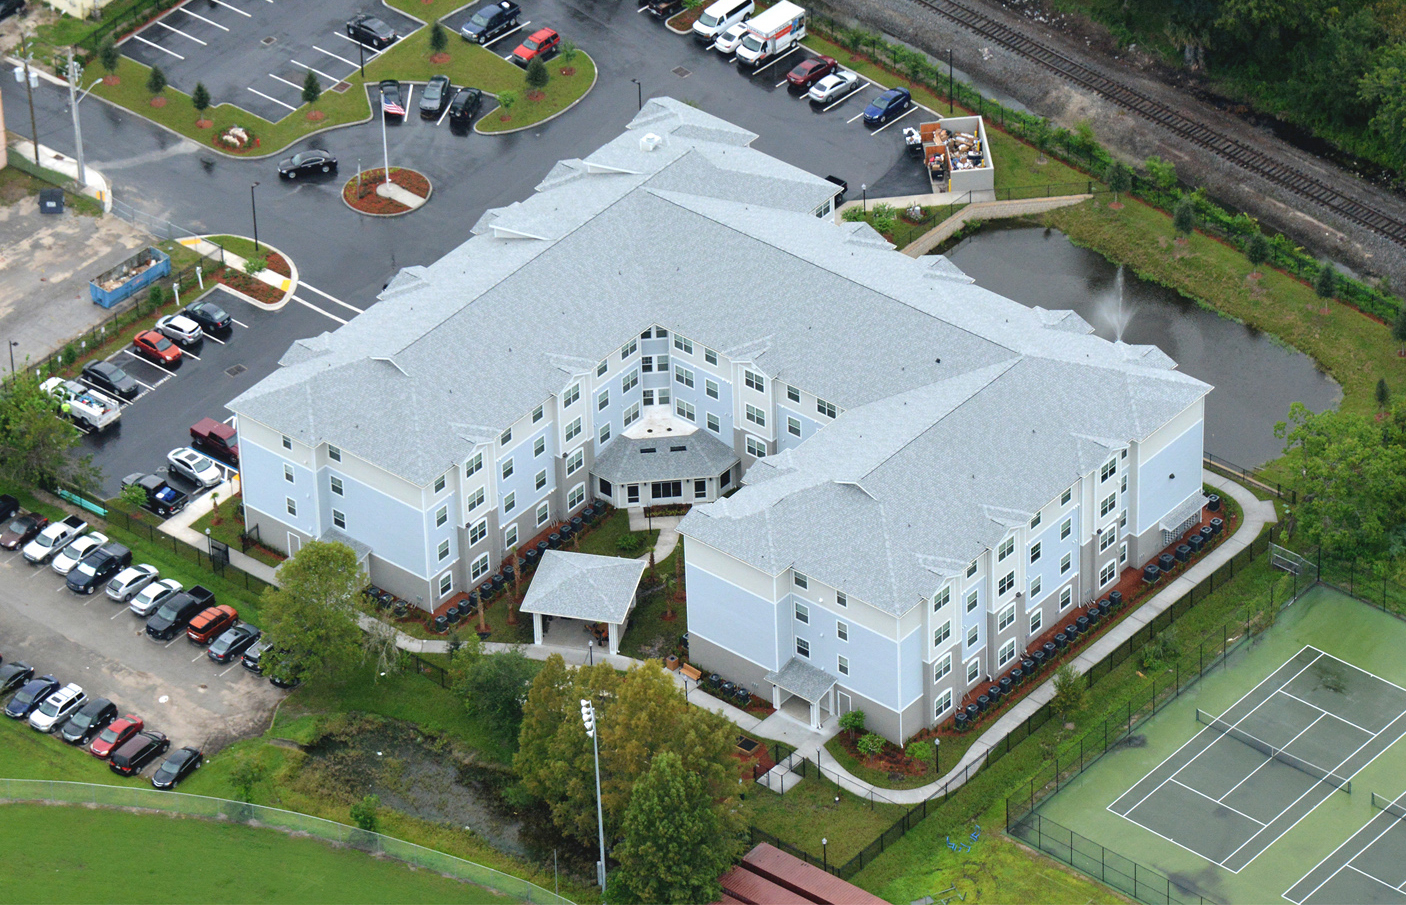 Multi level senior living facility aerial view